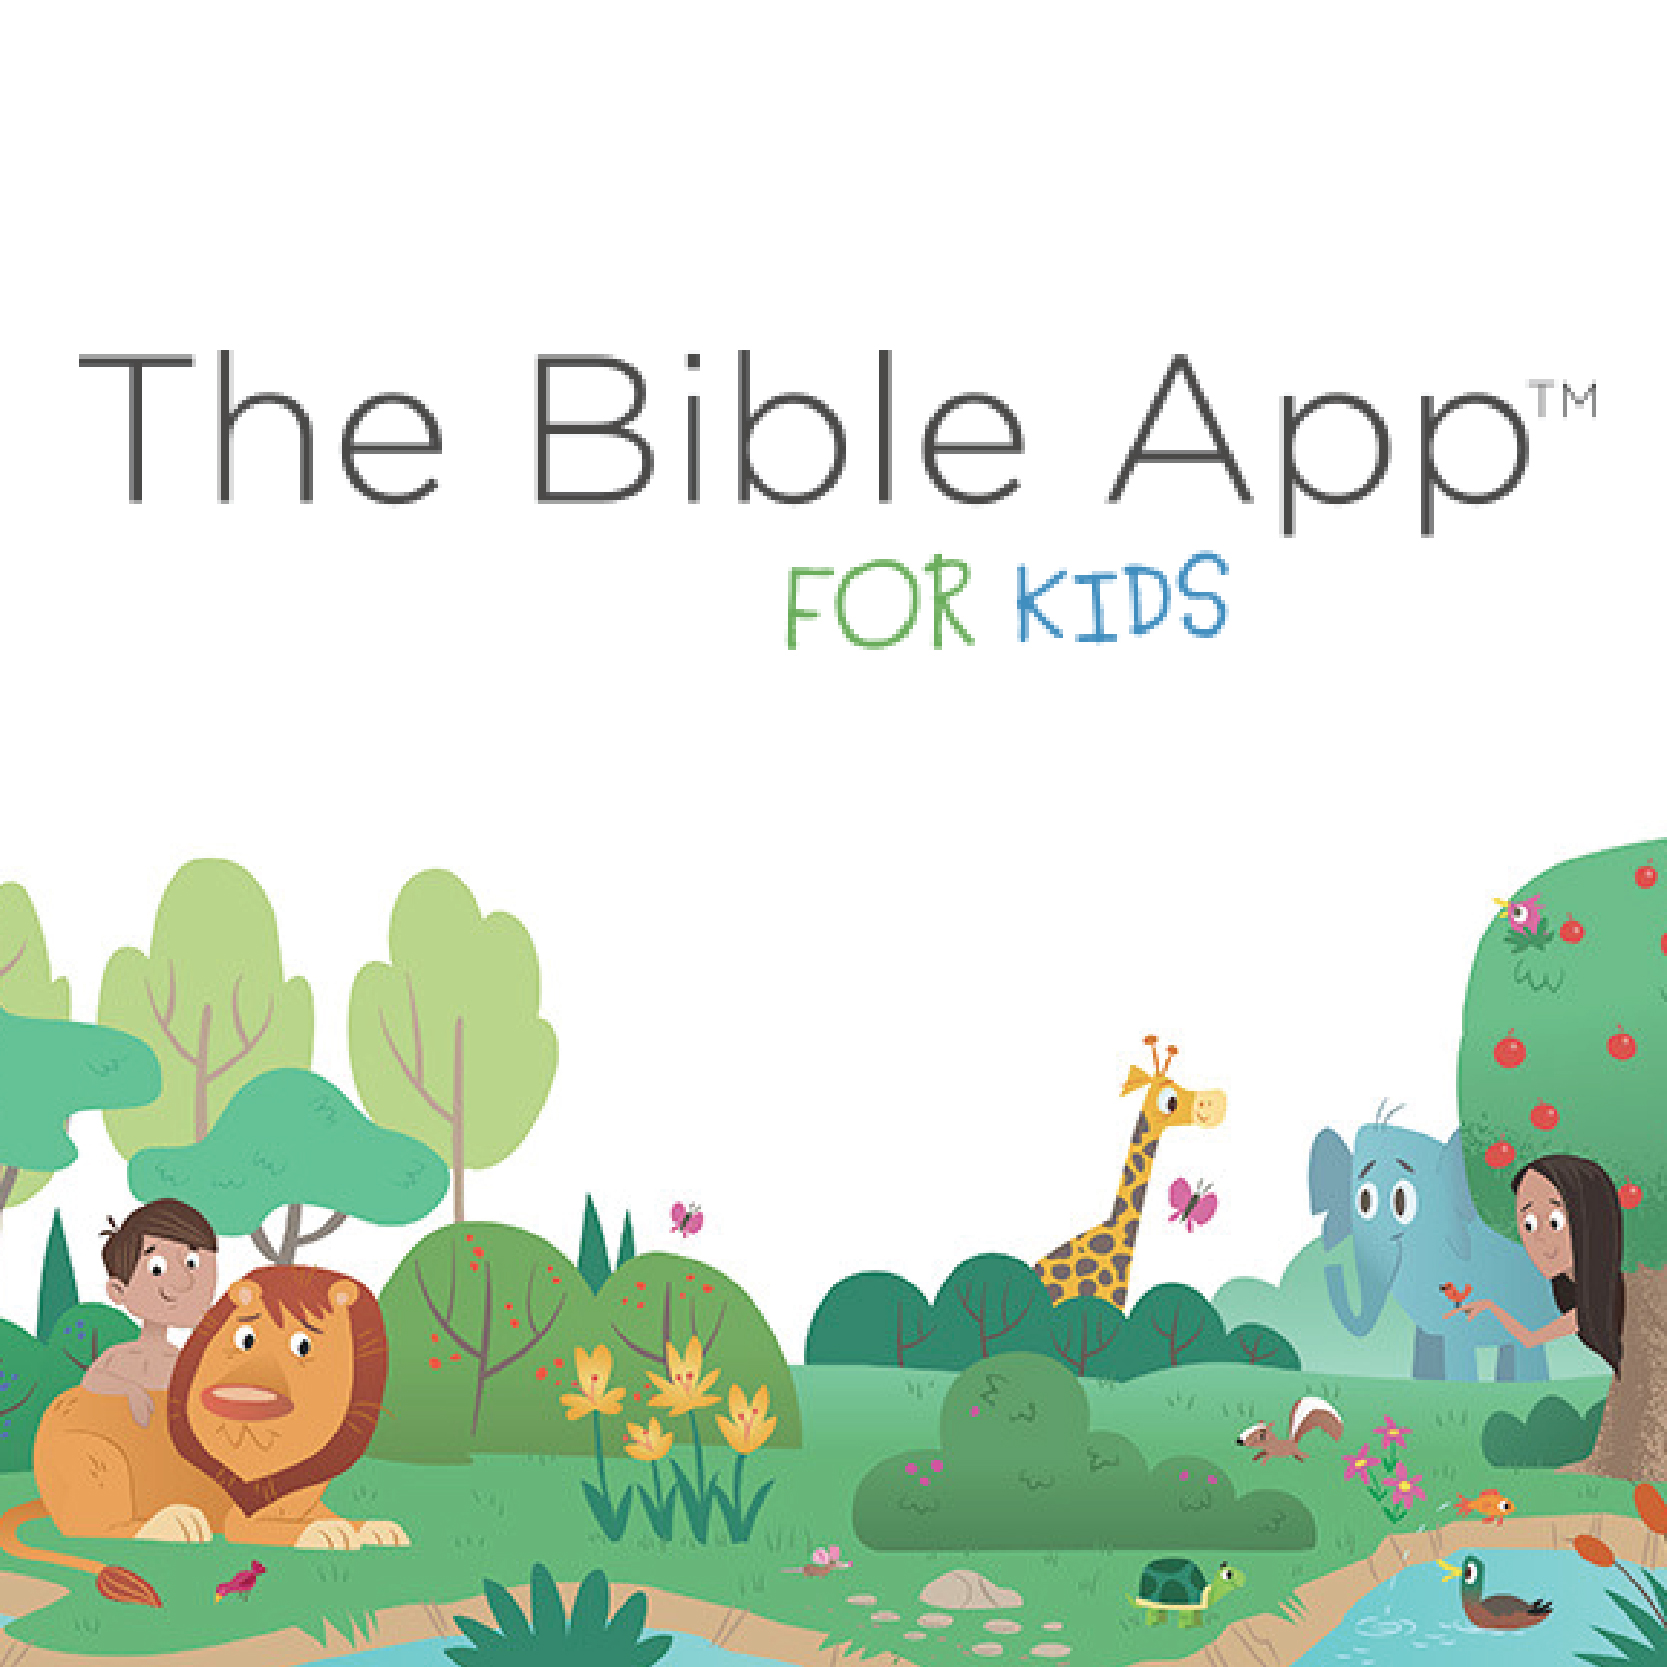 Bible App for Kids Marketing Images